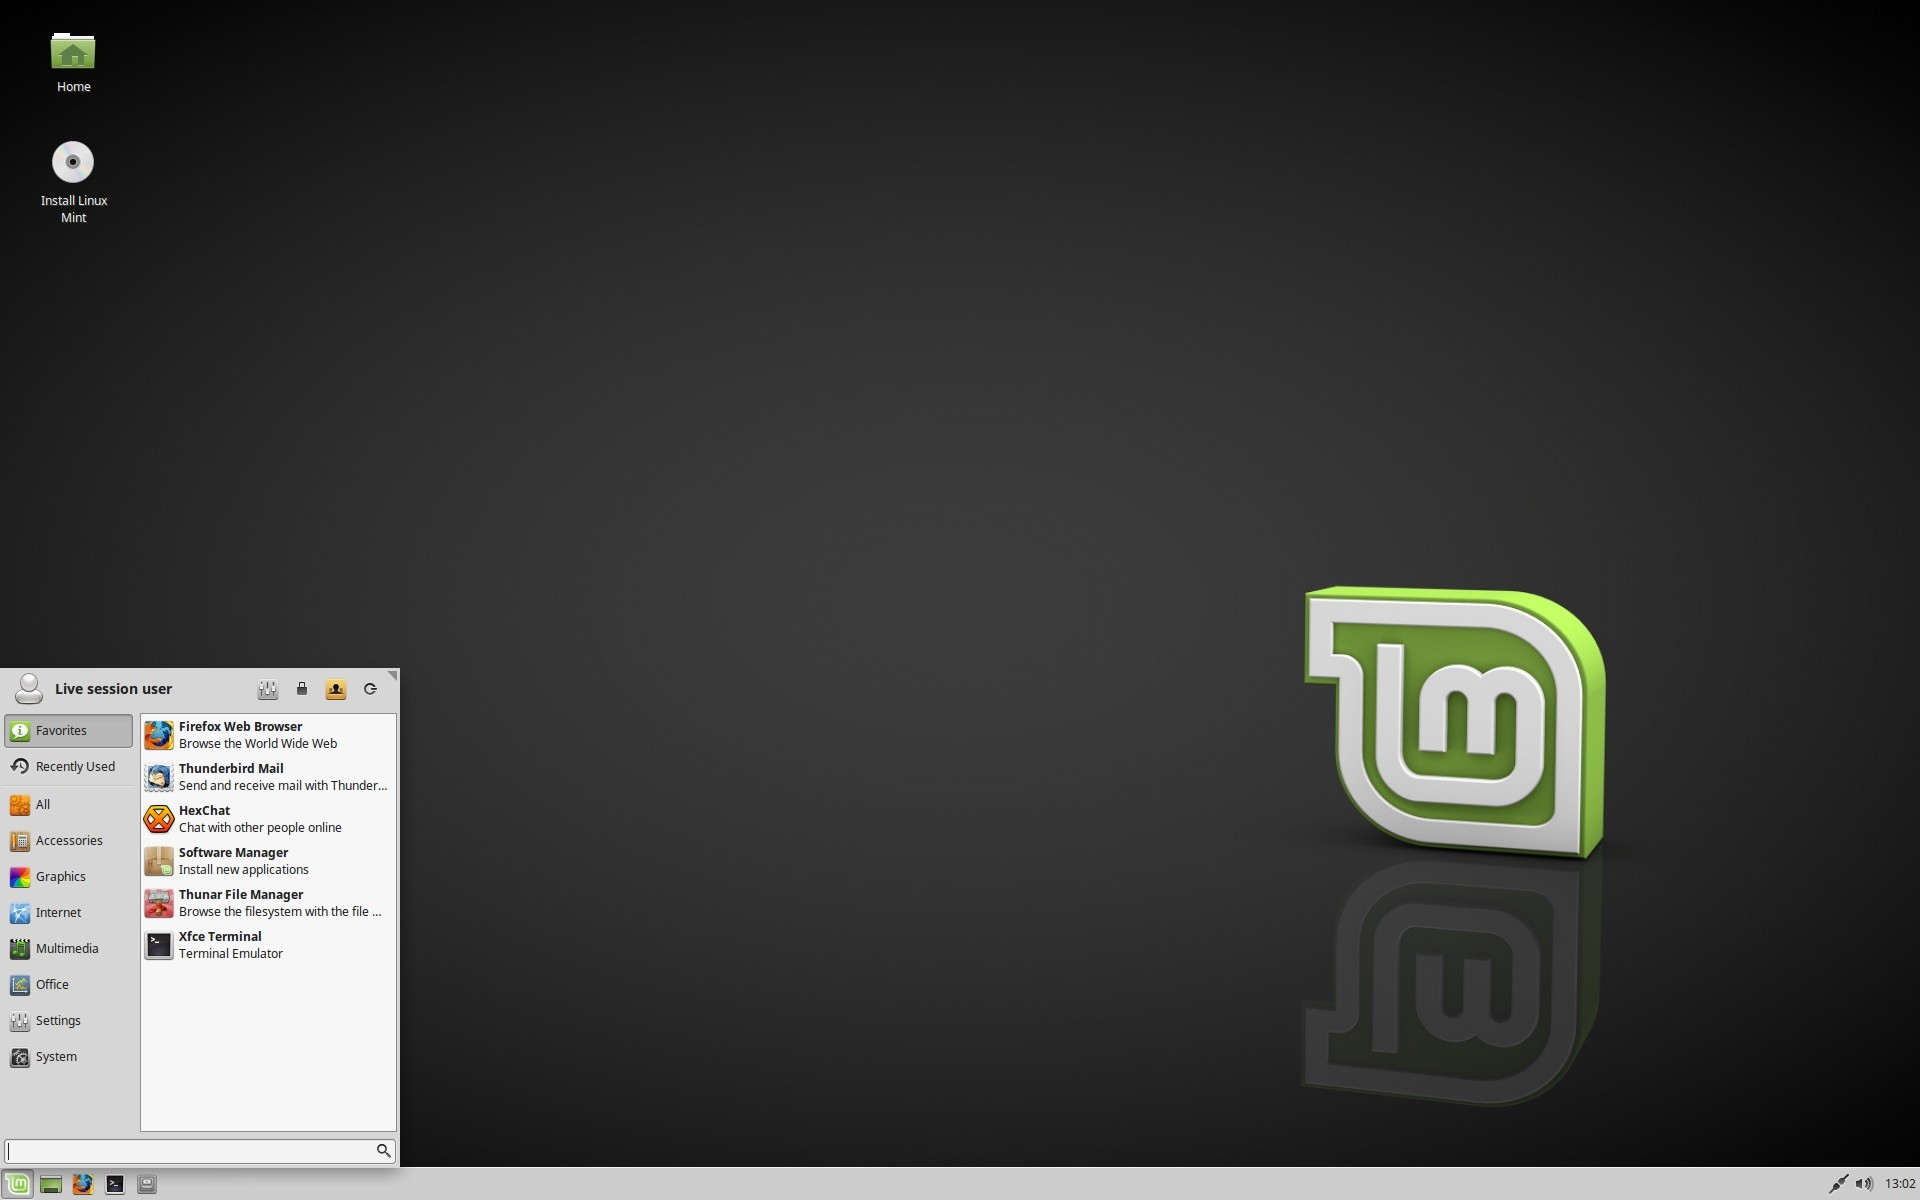 linux-mint-18-3-sylvia-kde-and-xfce-beta-editions-now-available-for-download-518801-3.jpg